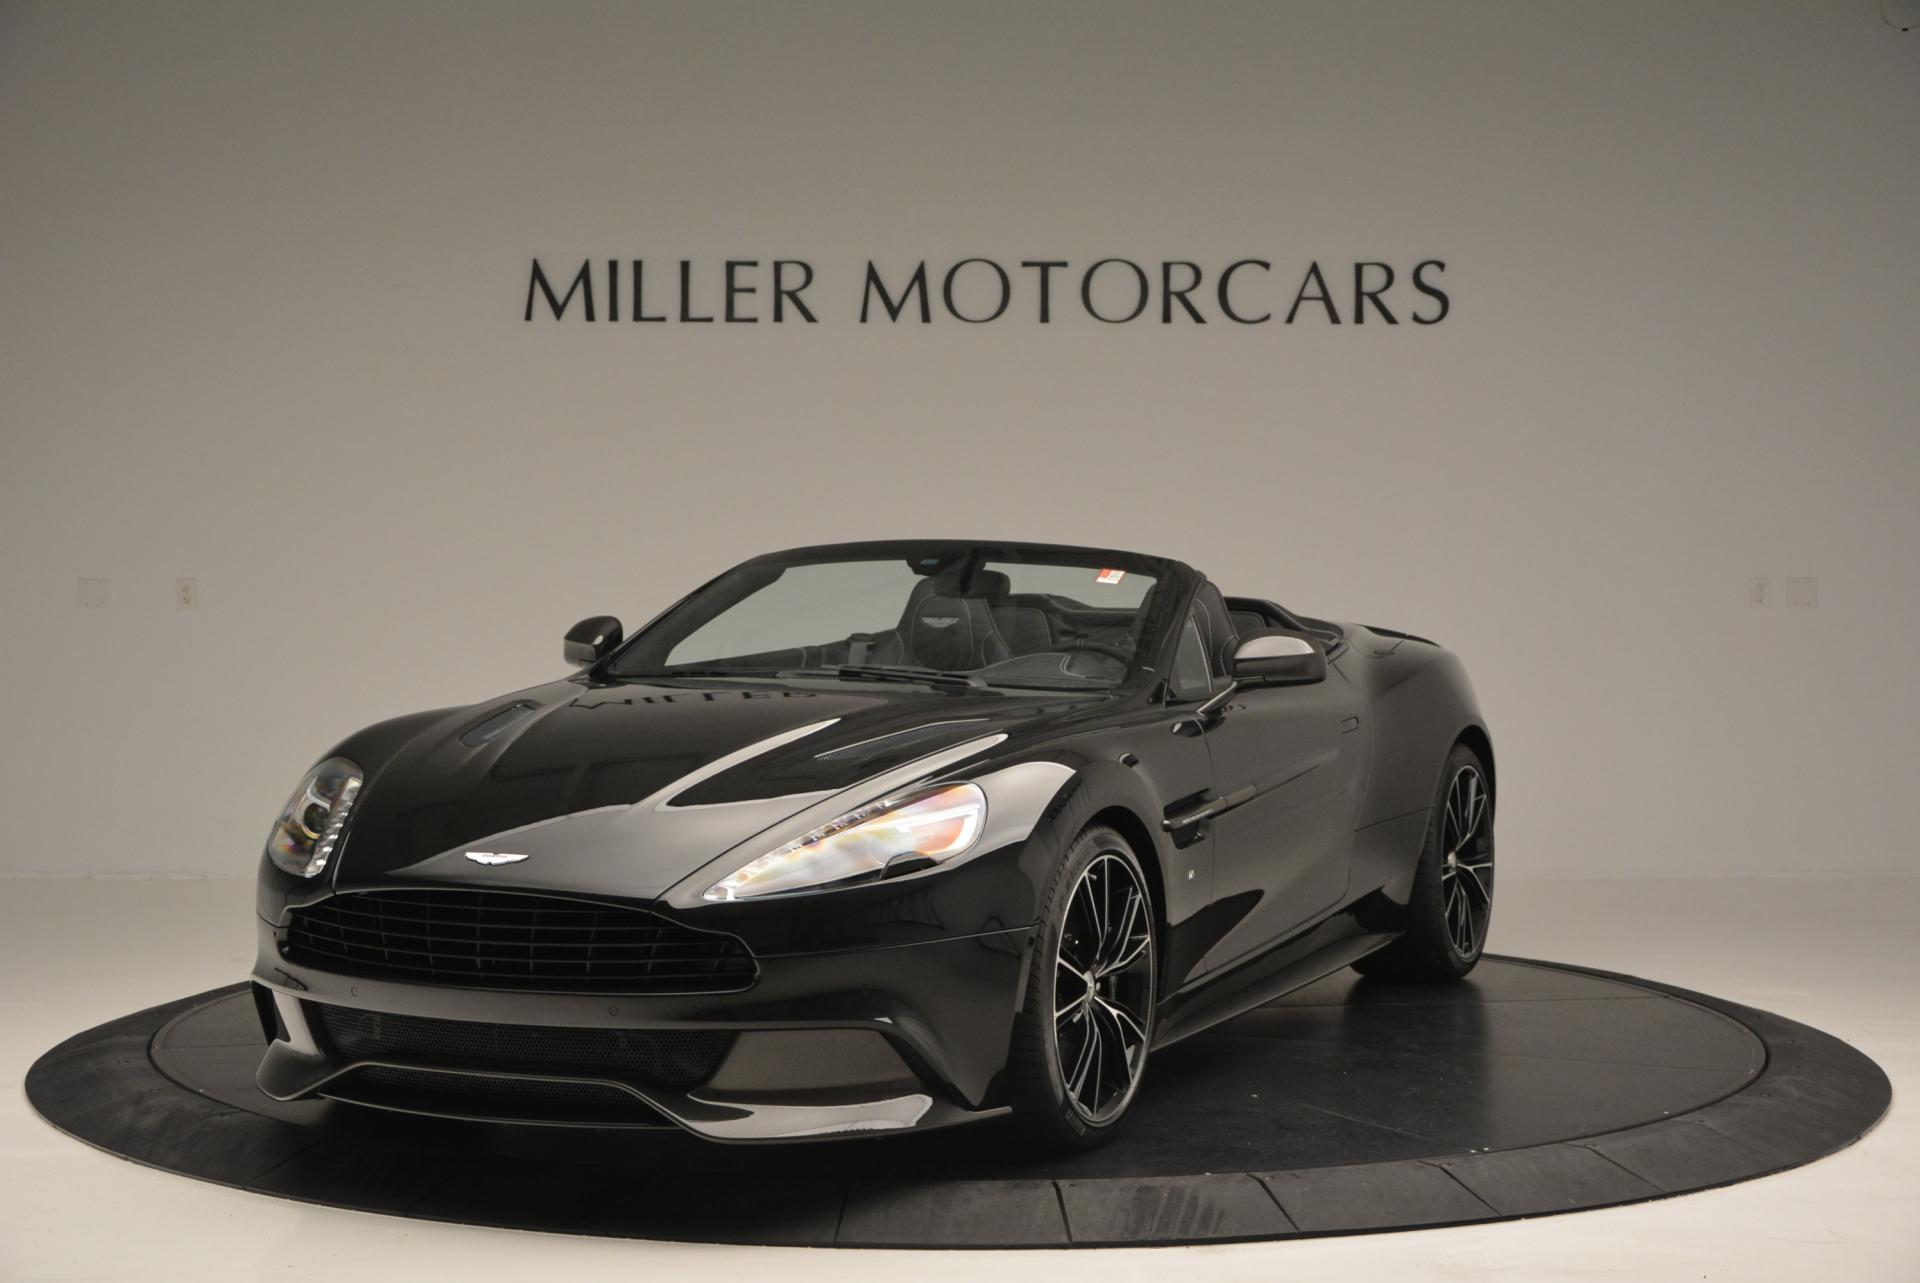 New 2016 Aston Martin Vanquish Volante For Sale In Greenwich, CT 83_main